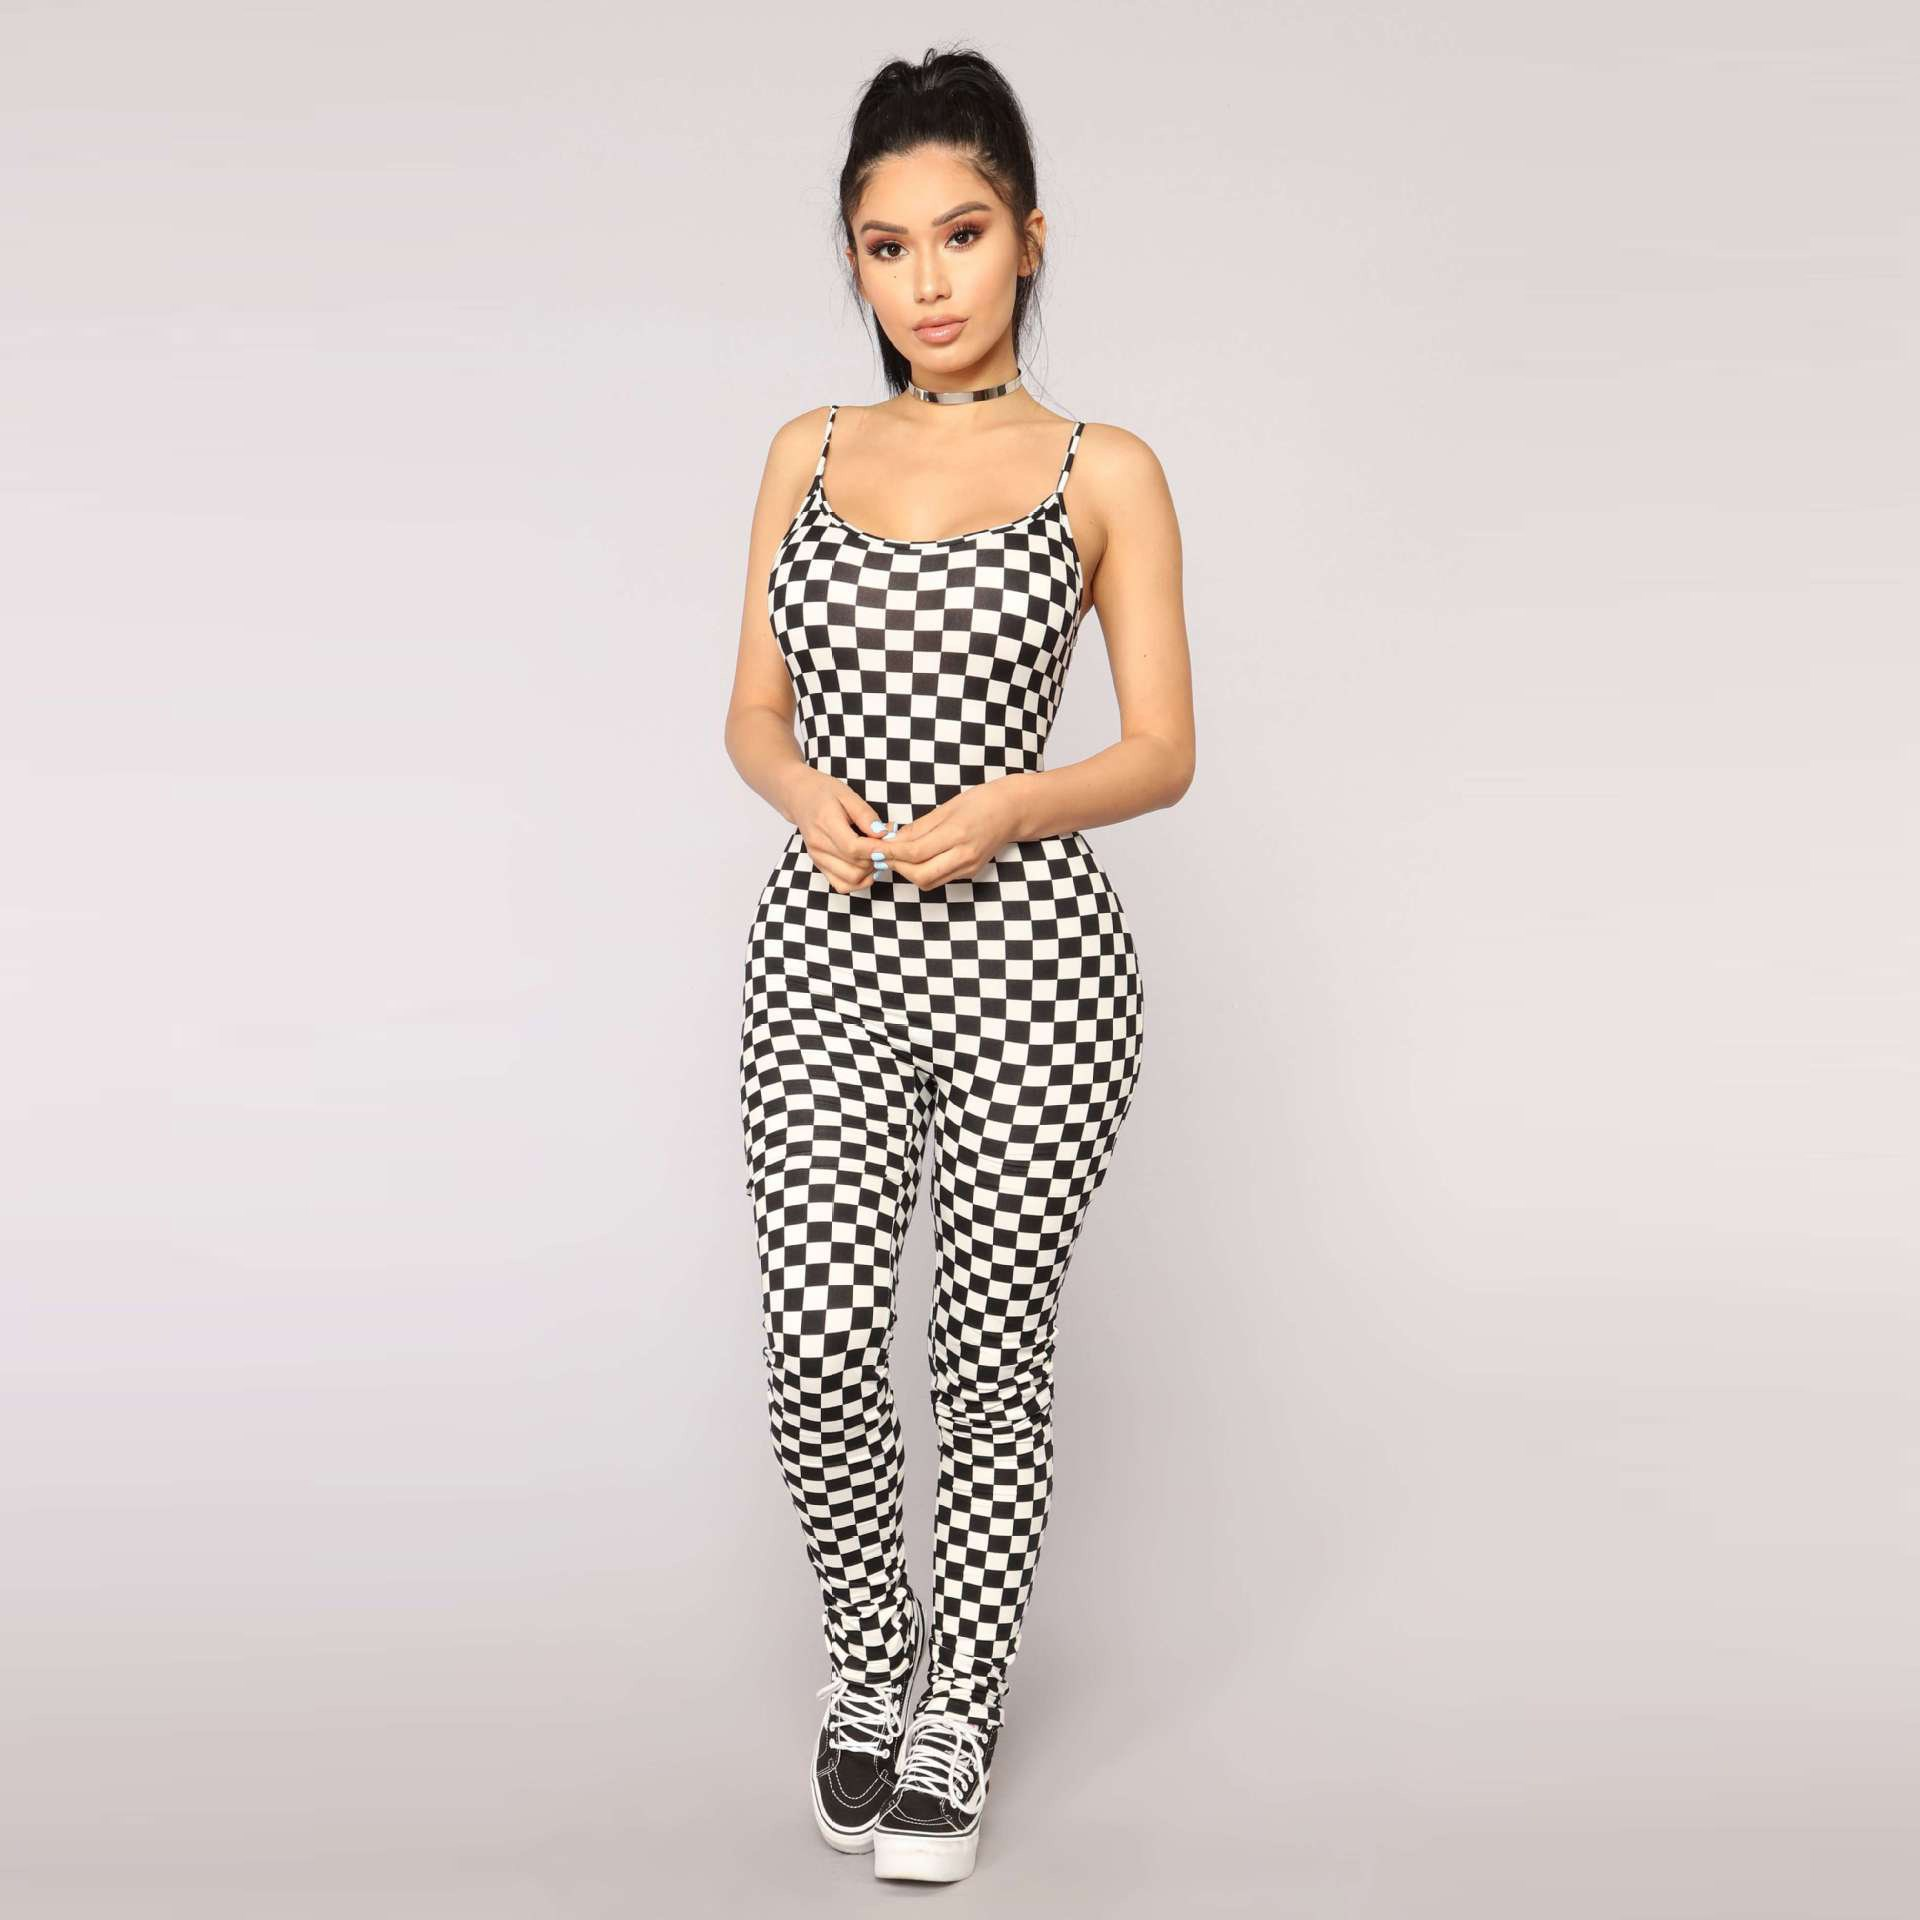 Women Sexy Strap Checkboard Print Jumpsuits Women Black Backless Plaid Sexy Rompers Summer Bodycon Jumpsuit